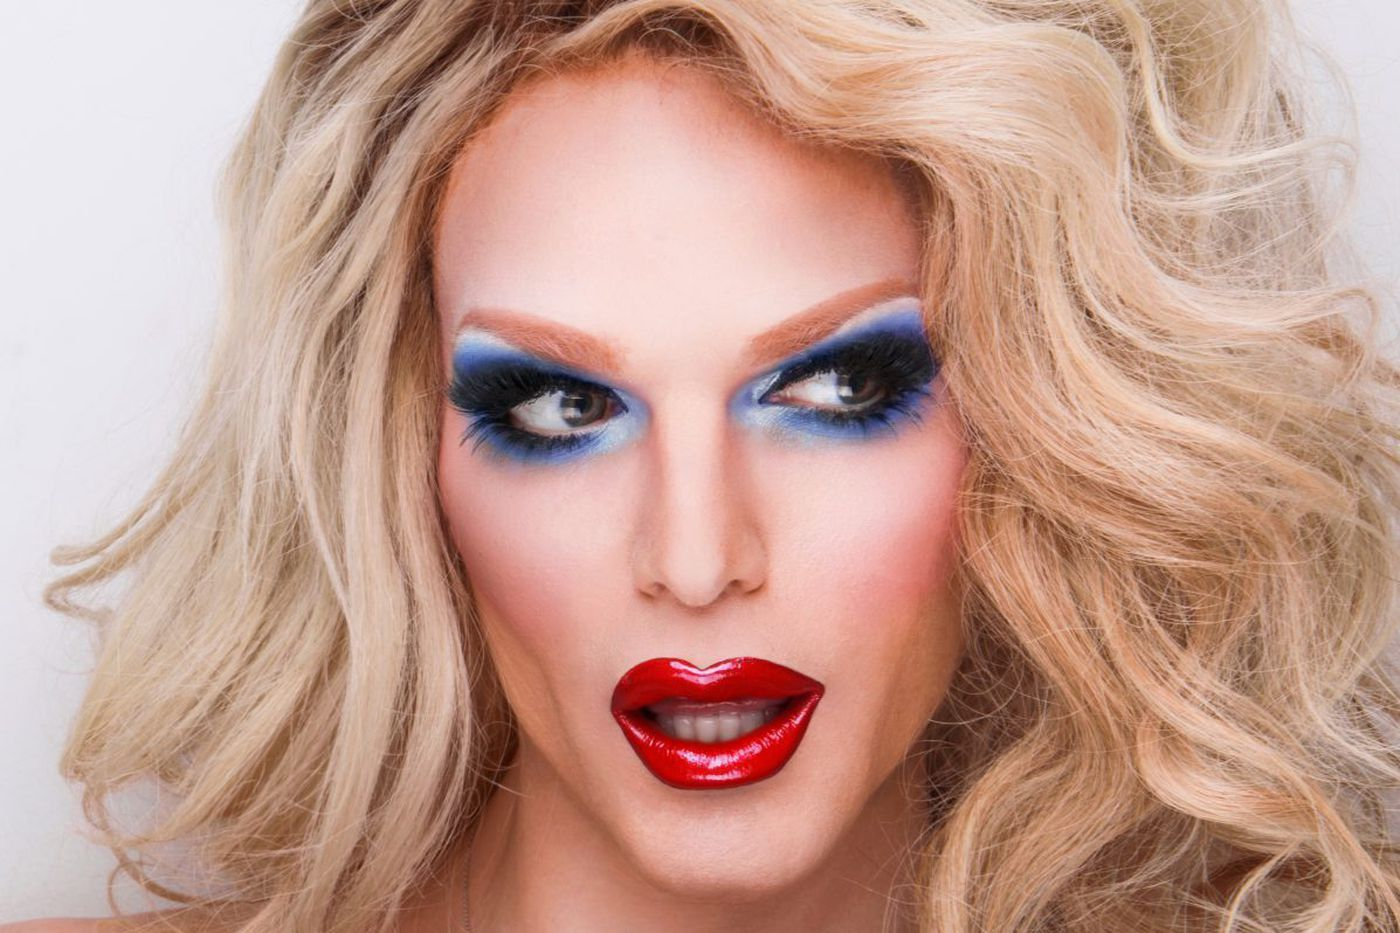 South Philly-born drag queen Willam Belli scores the biggest role of his career in 'A Star Is Born'